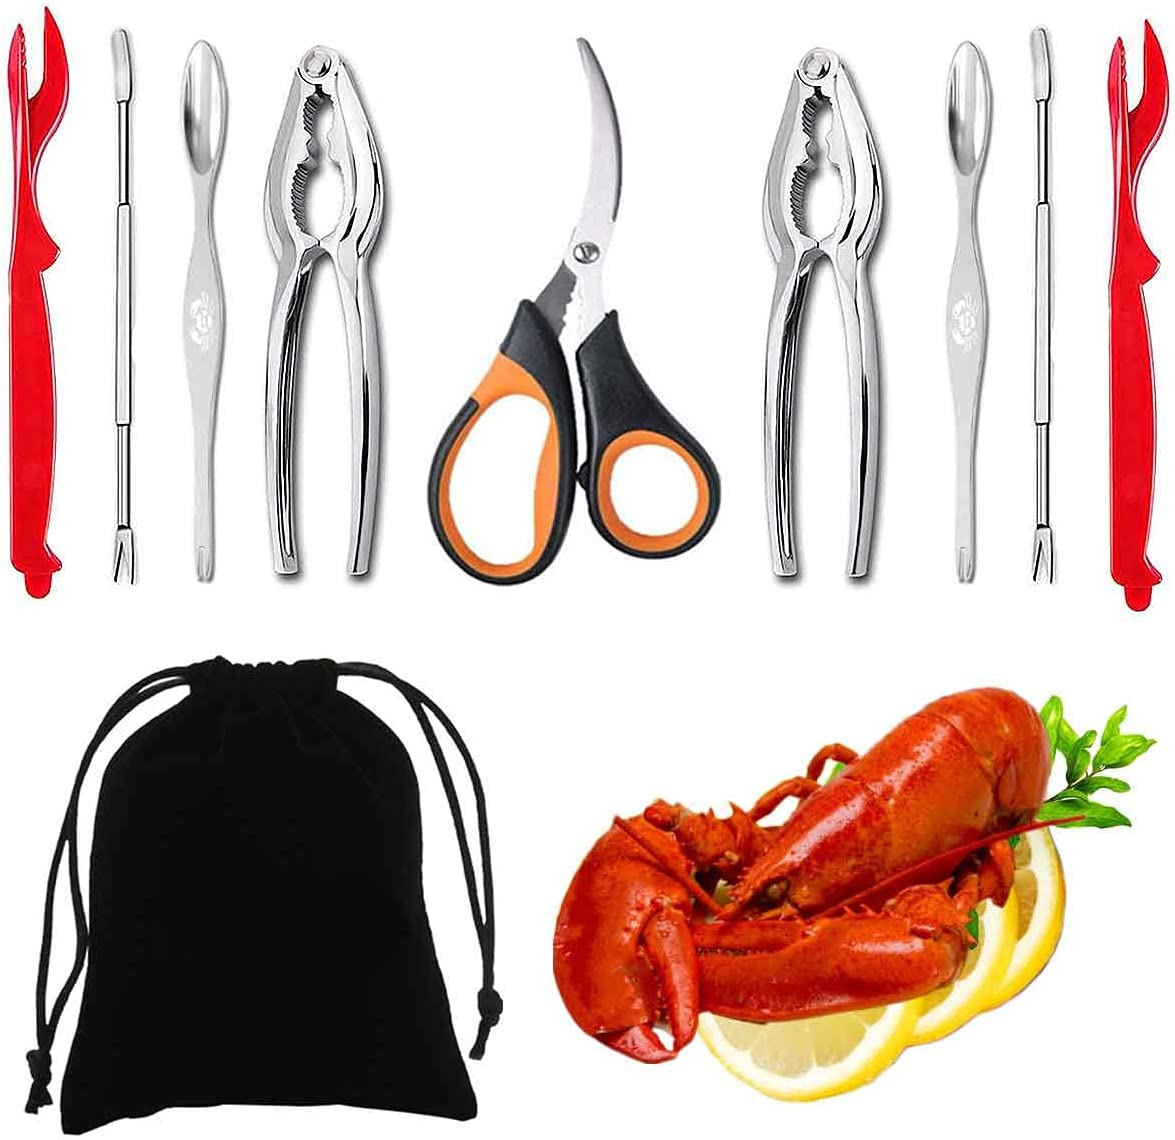 Artcome 10 Piece Seafood Tools Set - 2 Crab Crackers, 2 Lobster Shellers, 2 Seafood Forks, 2 Wide Crab Forks, 1 Seafood Scissors and 1 Storage Bag: Home & Kitchen